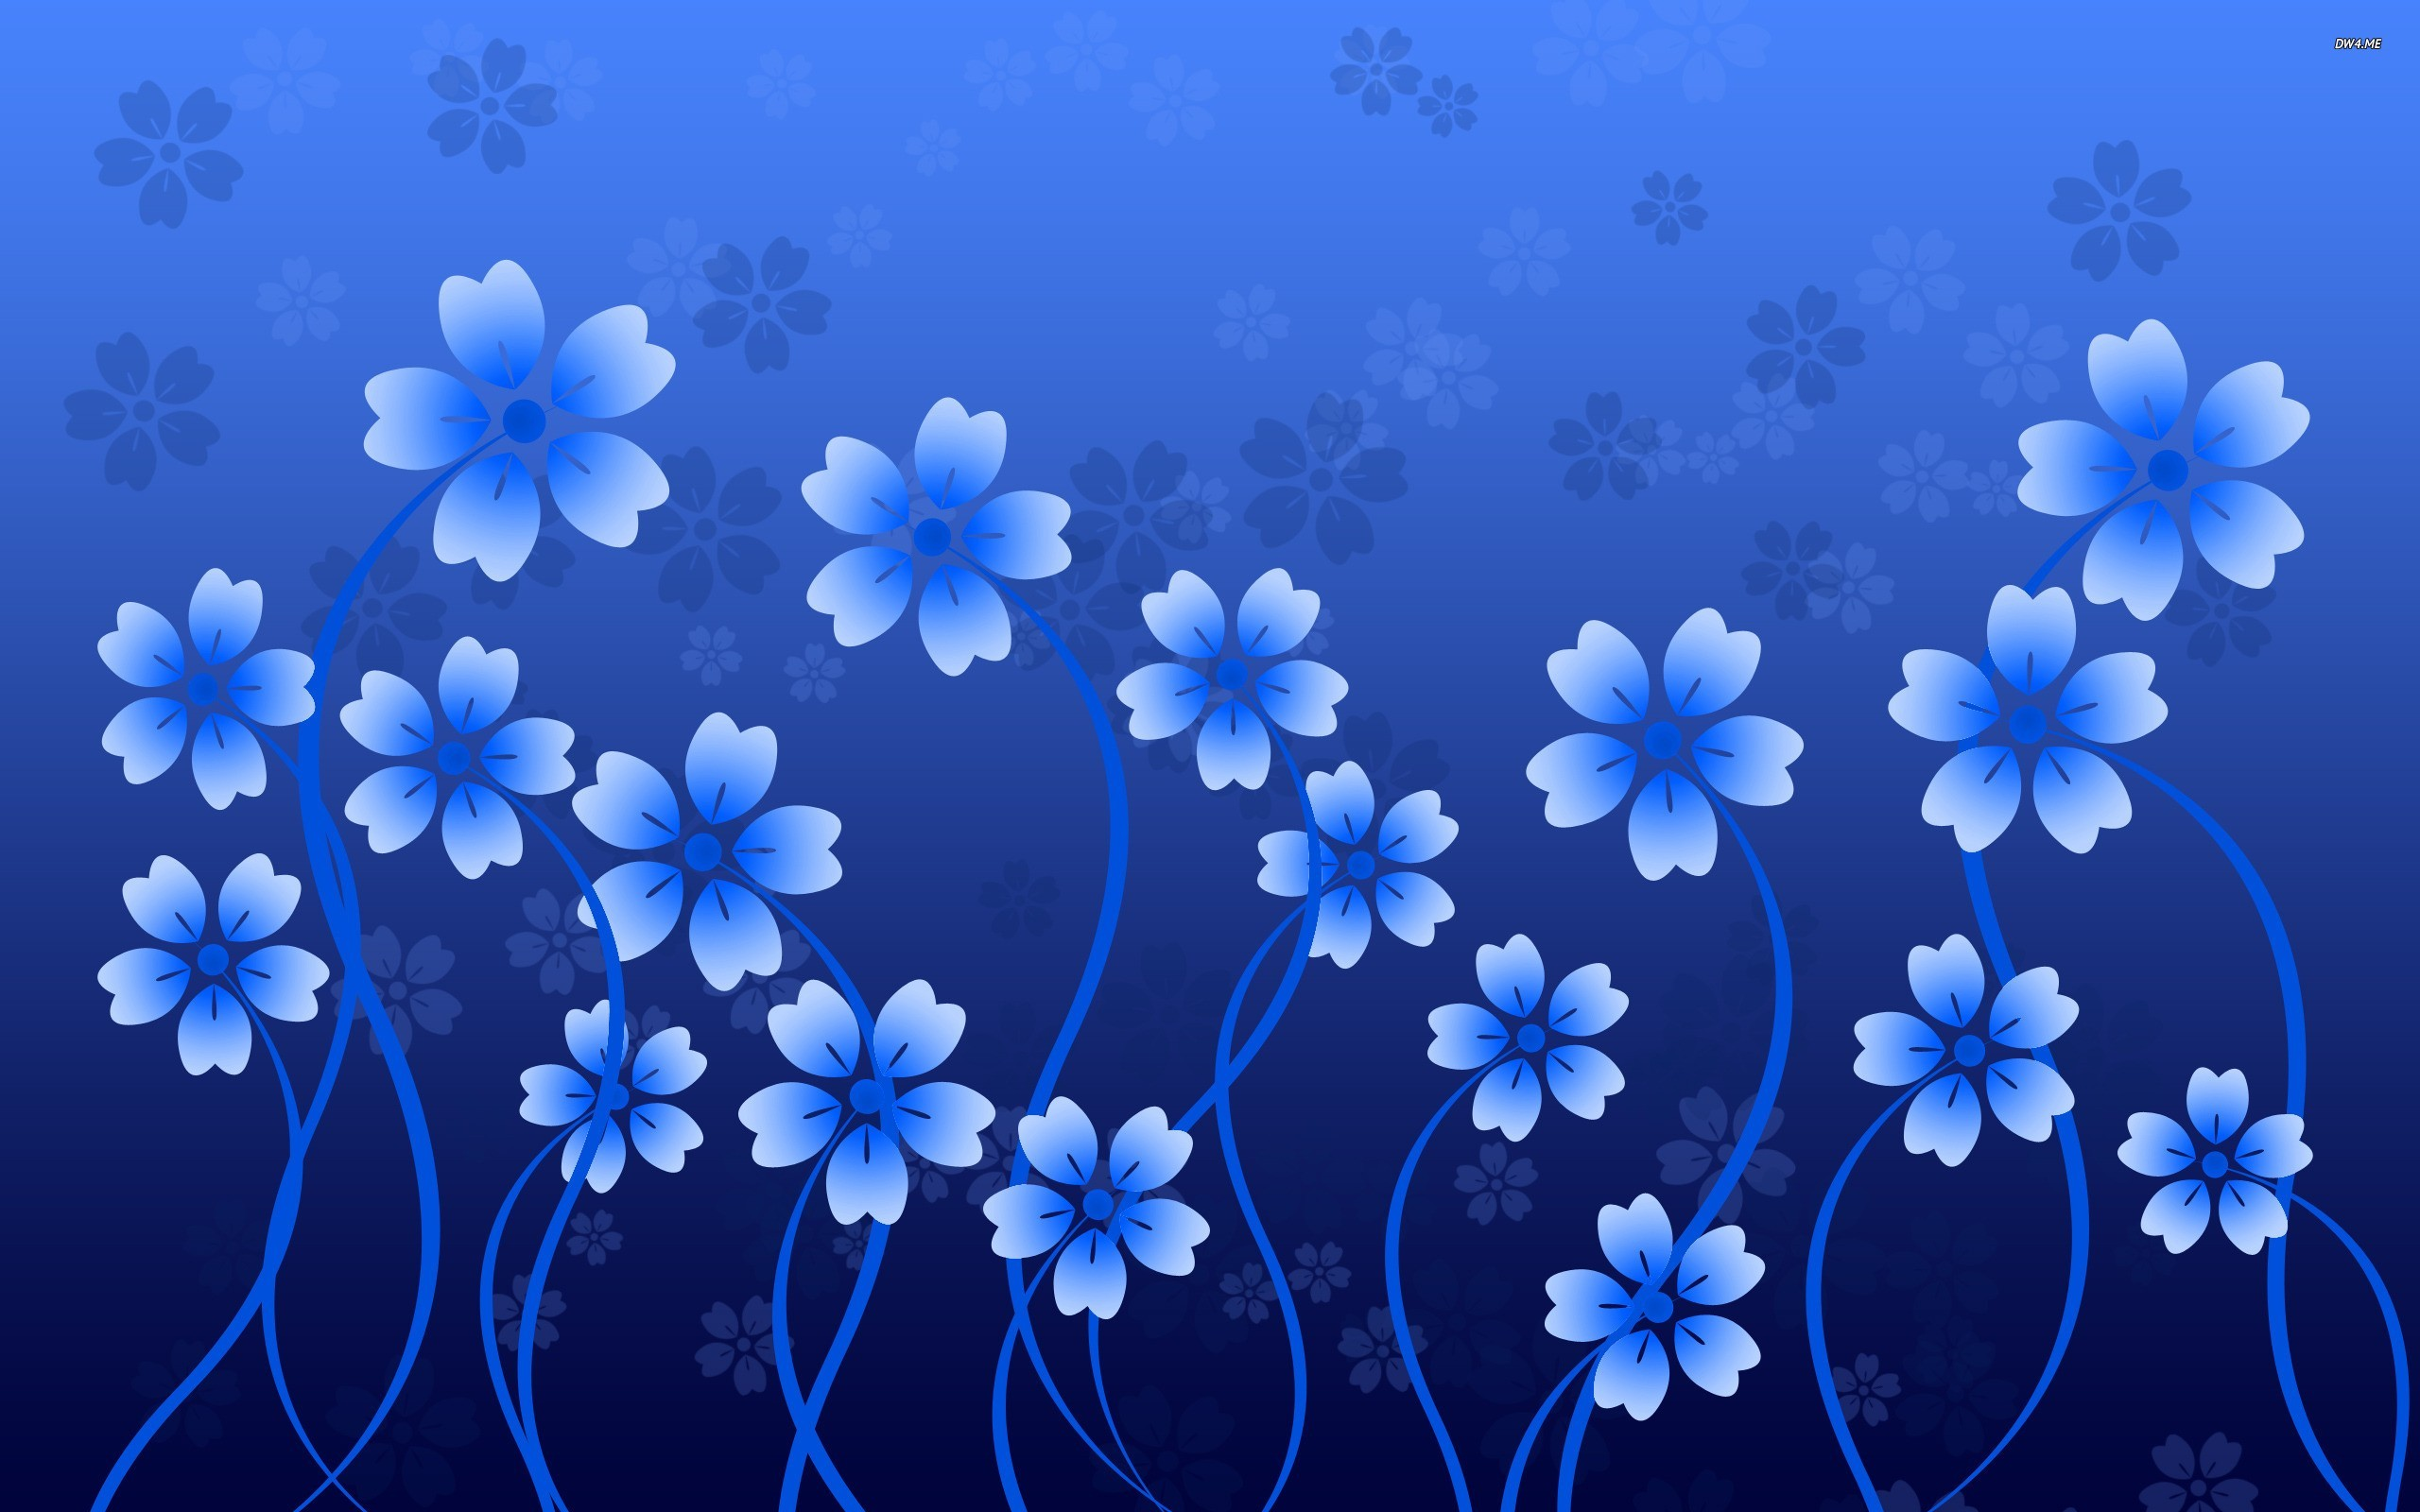 Res: 2560x1600, 2D Blue Flower Wallpaper Images